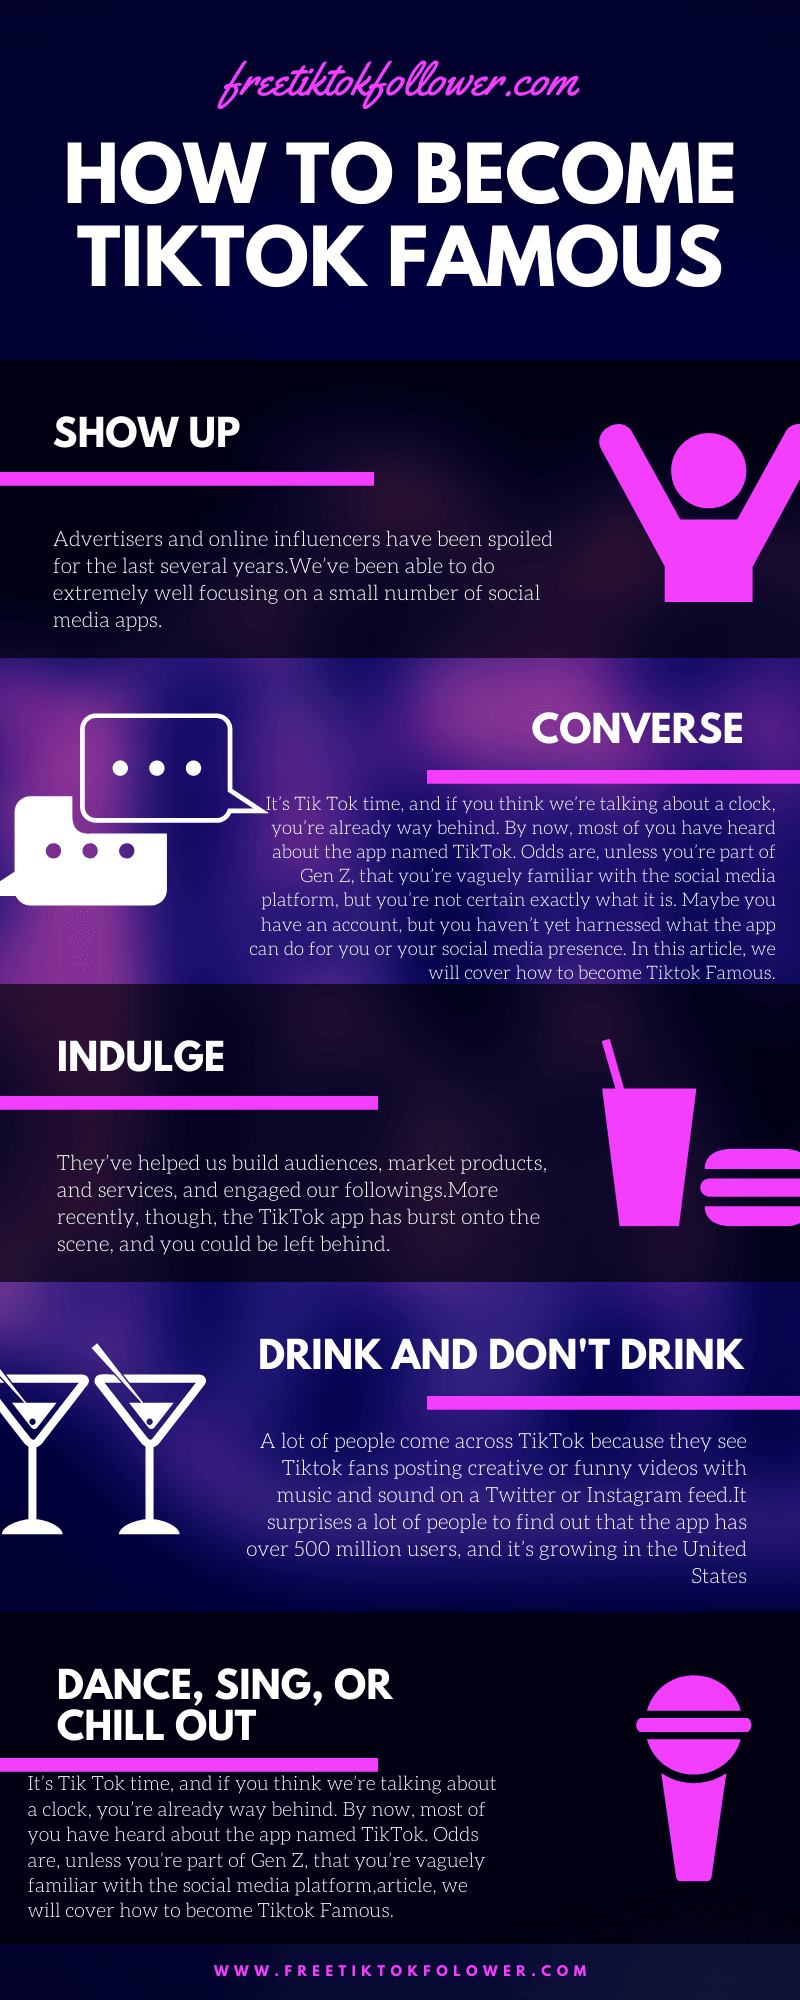 How to Become Tiktok Famous infographic by Freetiktokfollower.com.png